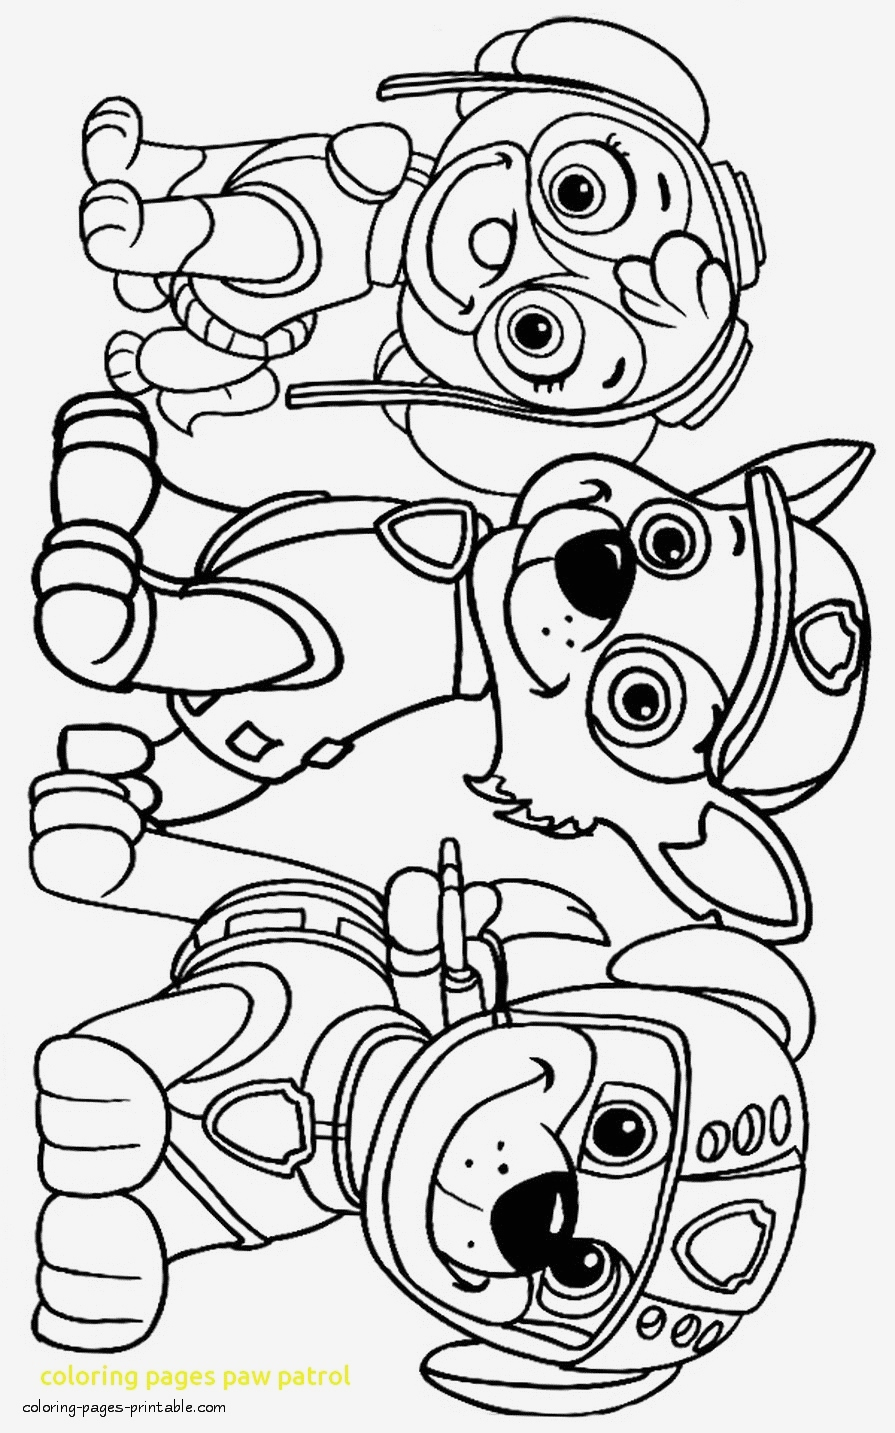 free paw patrol coloring pages Collection-Free Paw Patrol Coloring Pages the First Ever Custom 48 Best Paw Patrol Coloring Games Stock 9-f